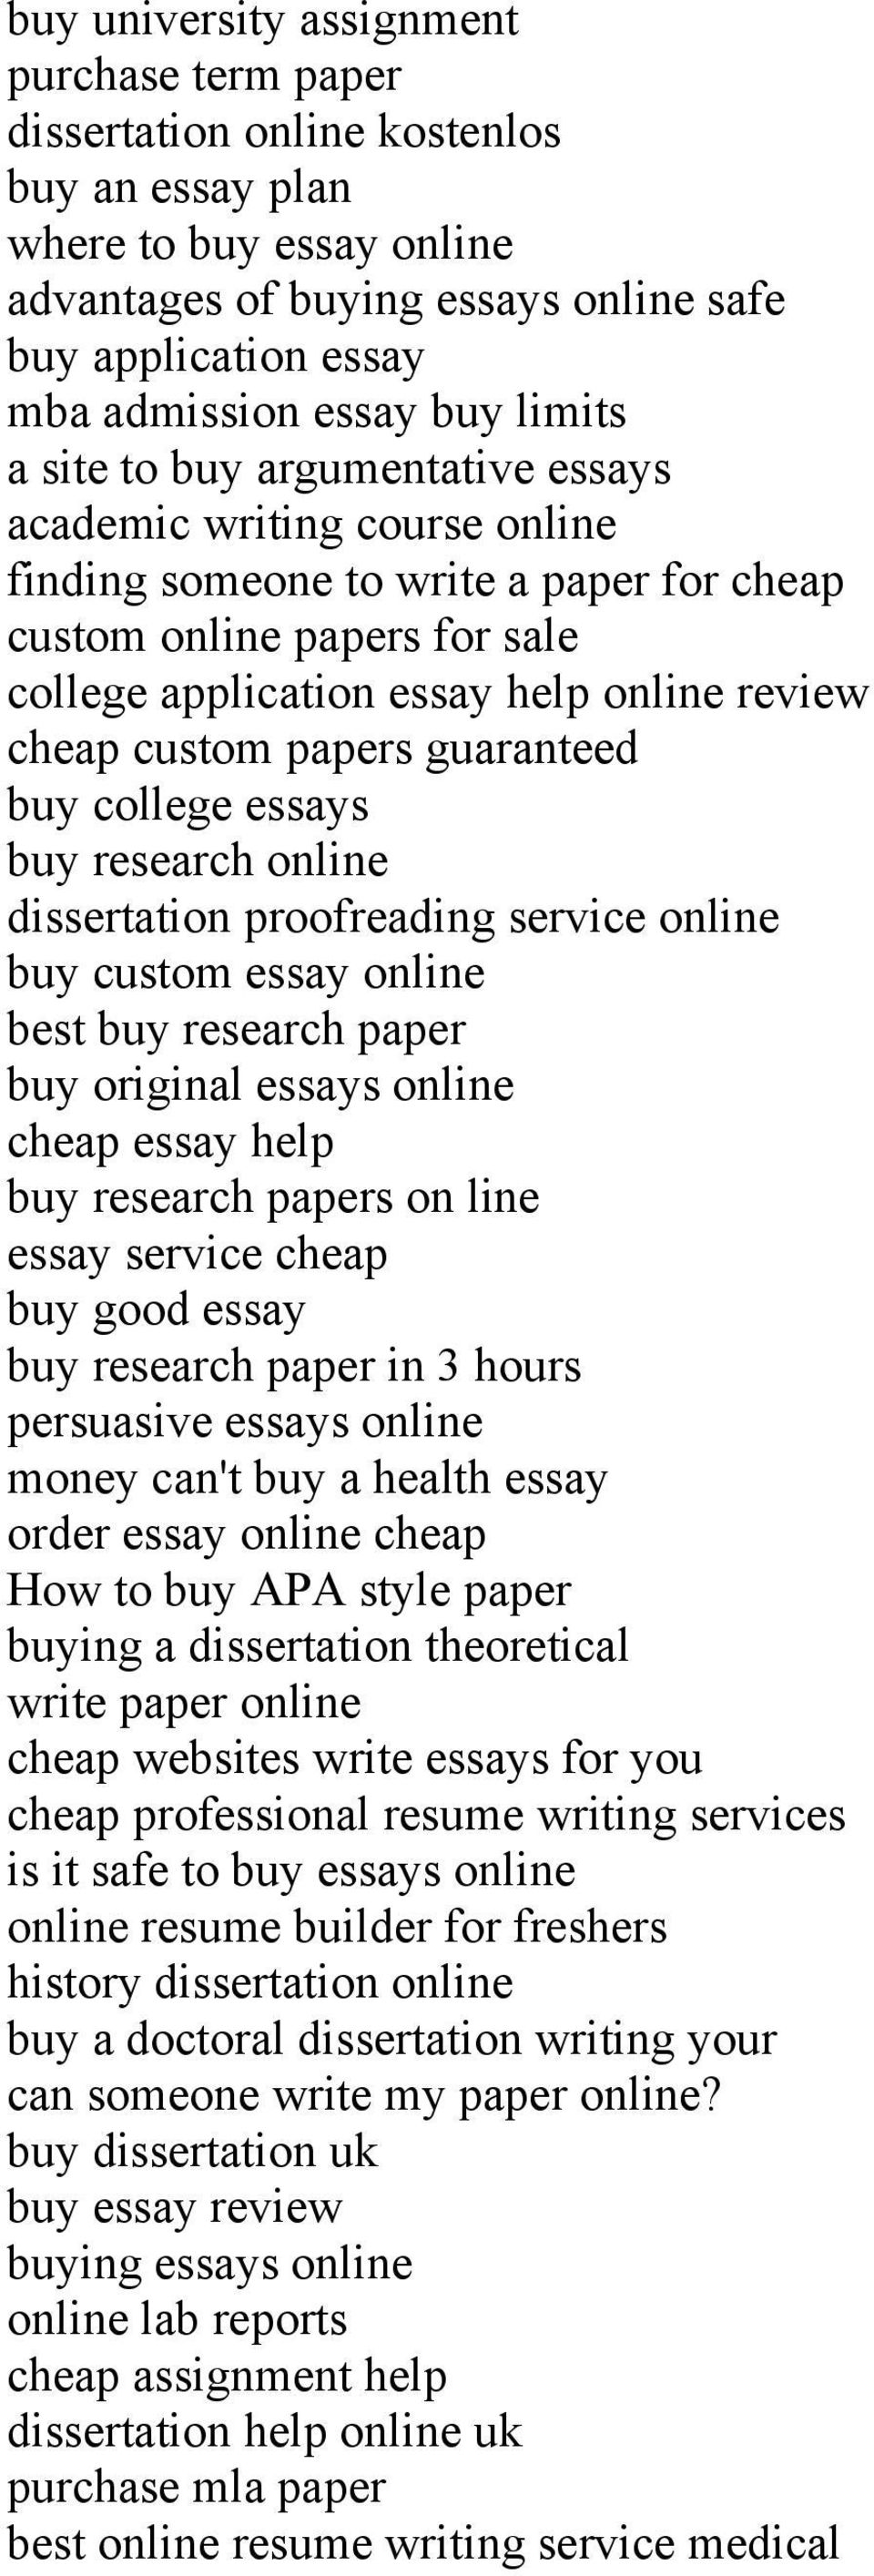 review cheap custom papers guaranteed buy college essays buy research online dissertation proofreading service online buy custom essay online best buy research paper buy original essays online cheap